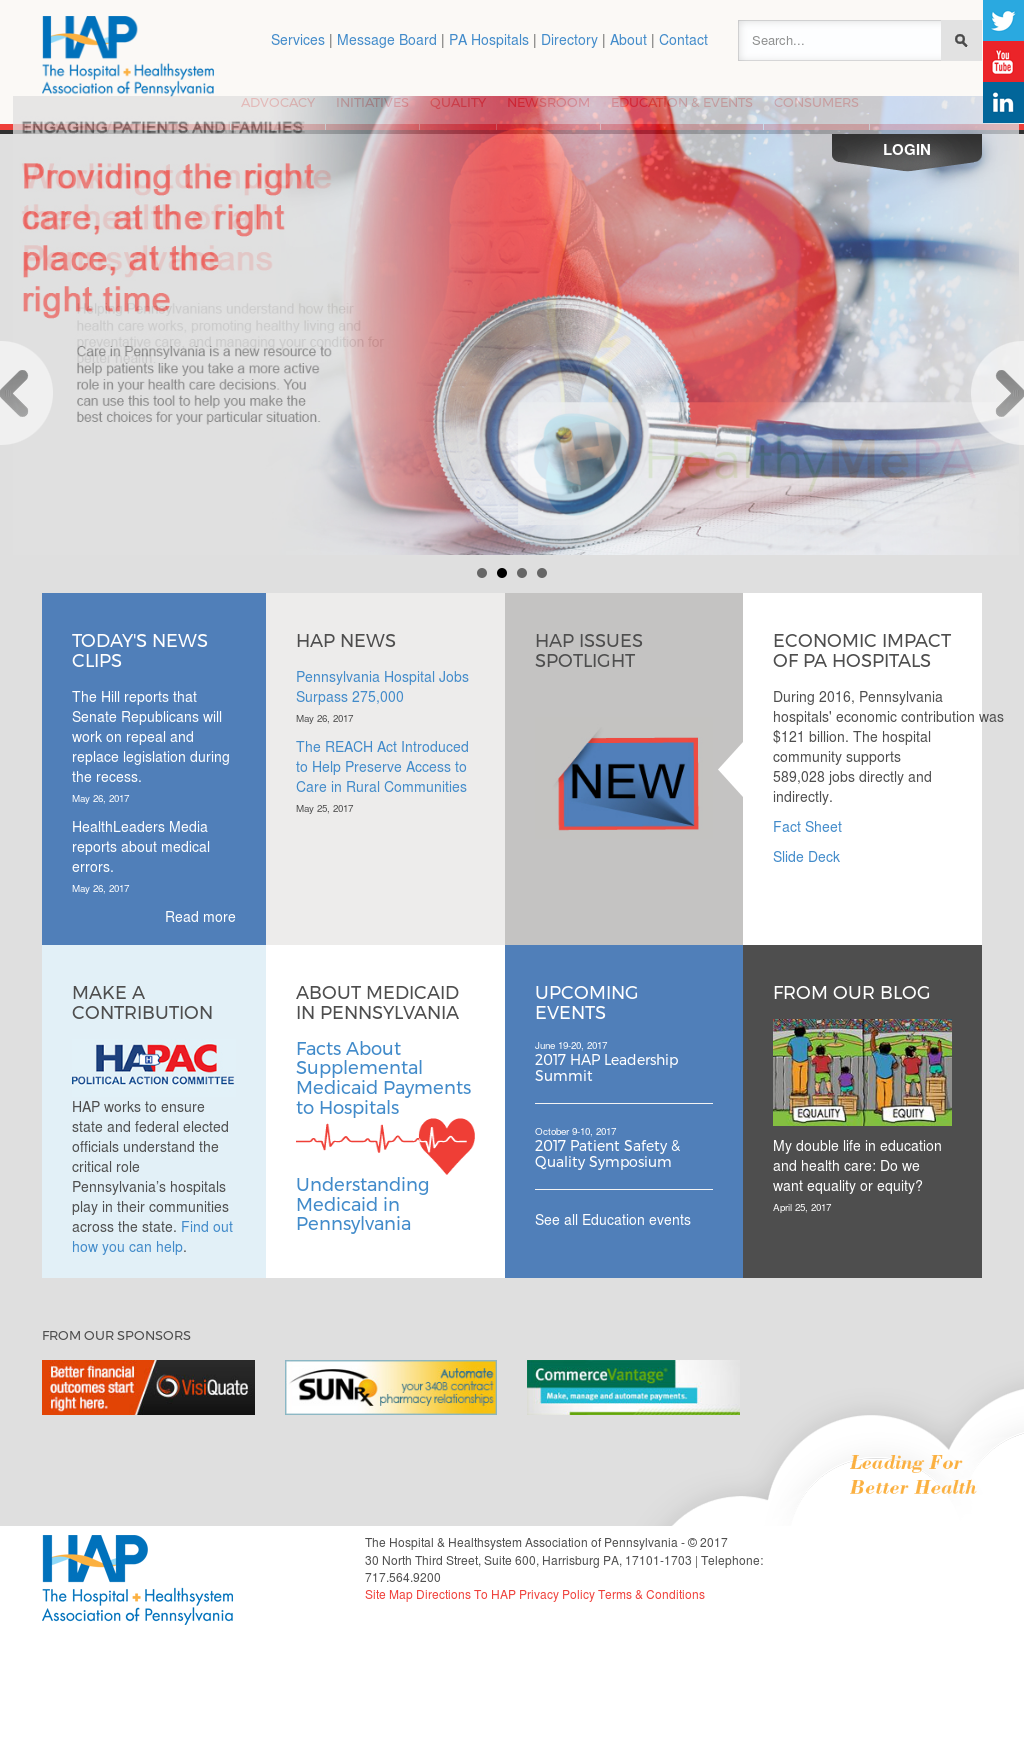 Haponline Competitors, Revenue and Employees - Owler Company